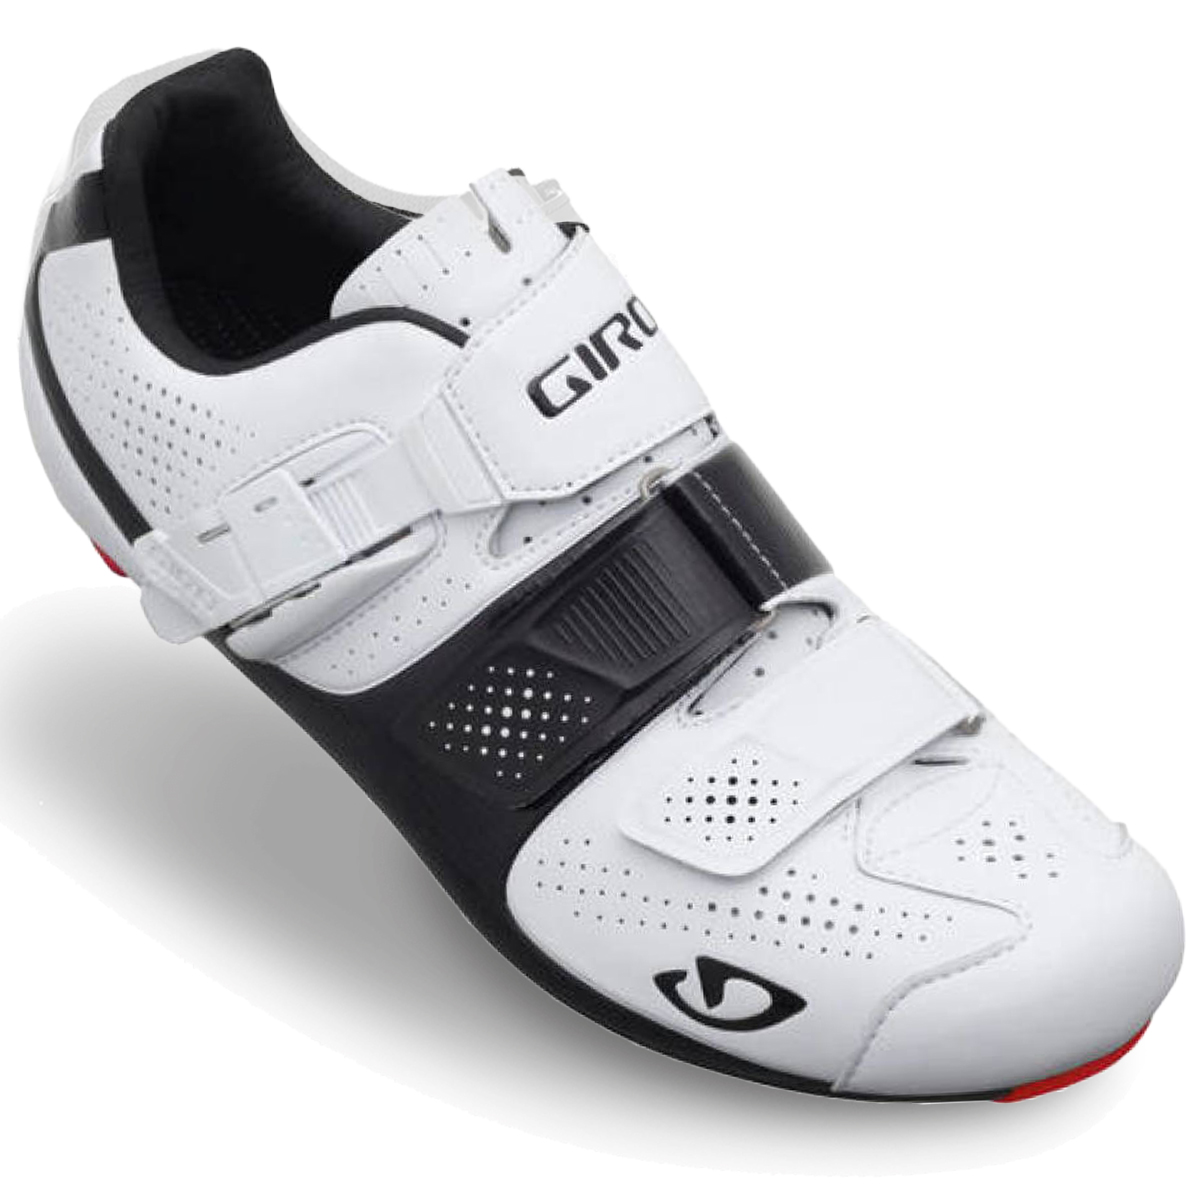 Giro Factor ACC Road Cycling Shoe